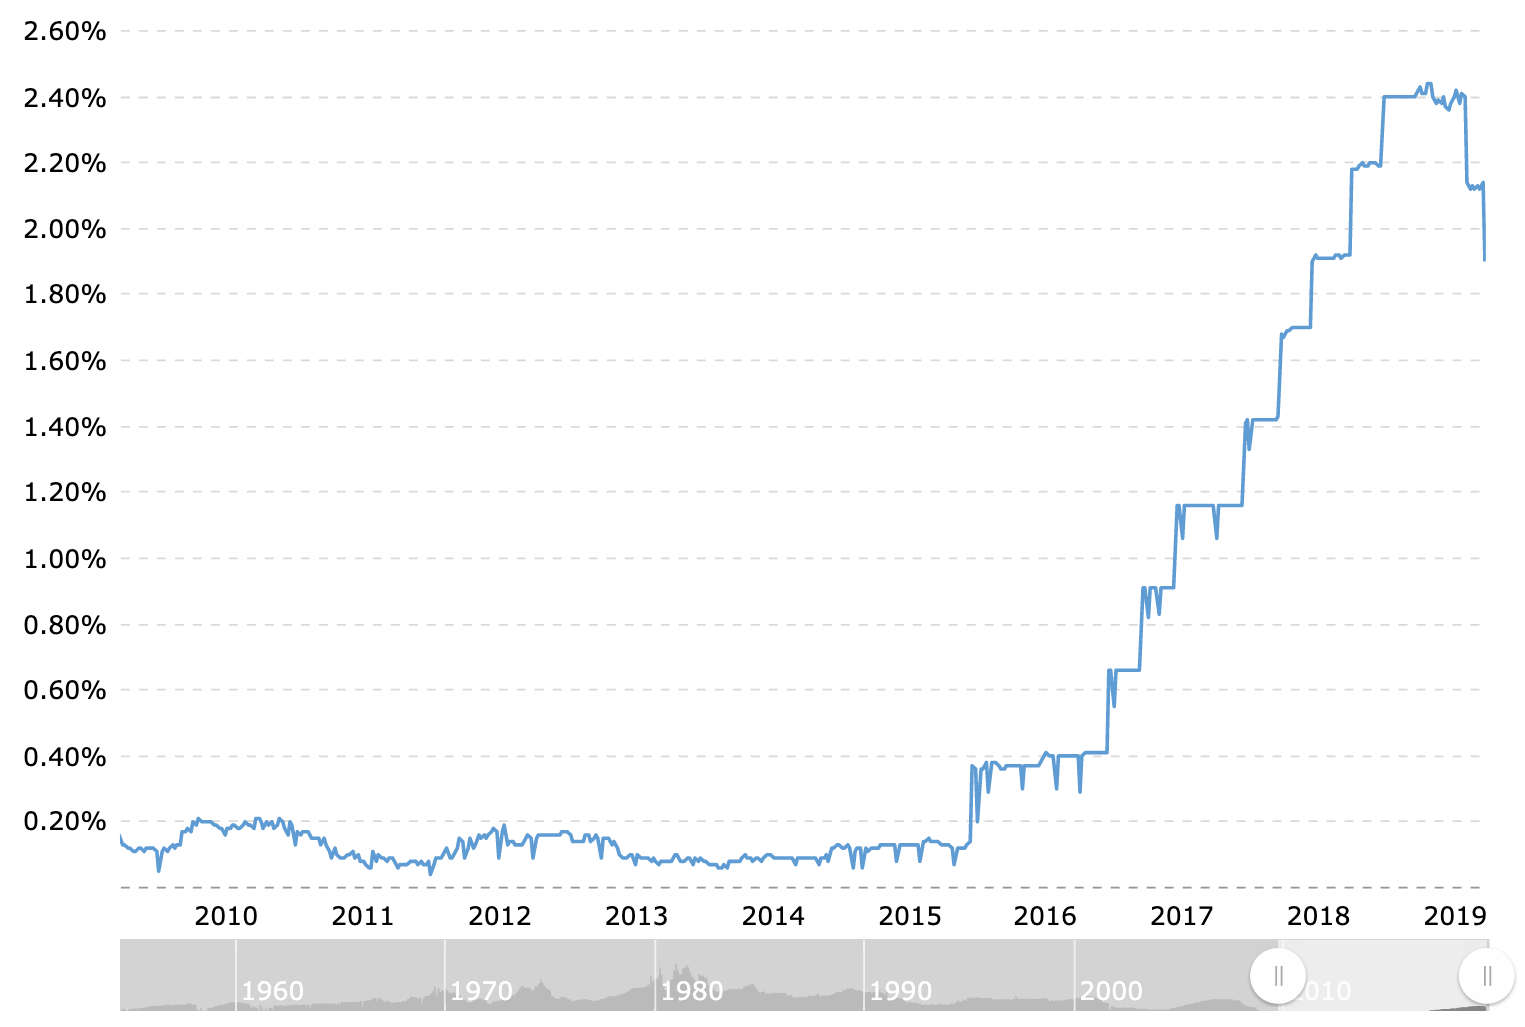 Fed Funds Rate Over The Past 10 Years